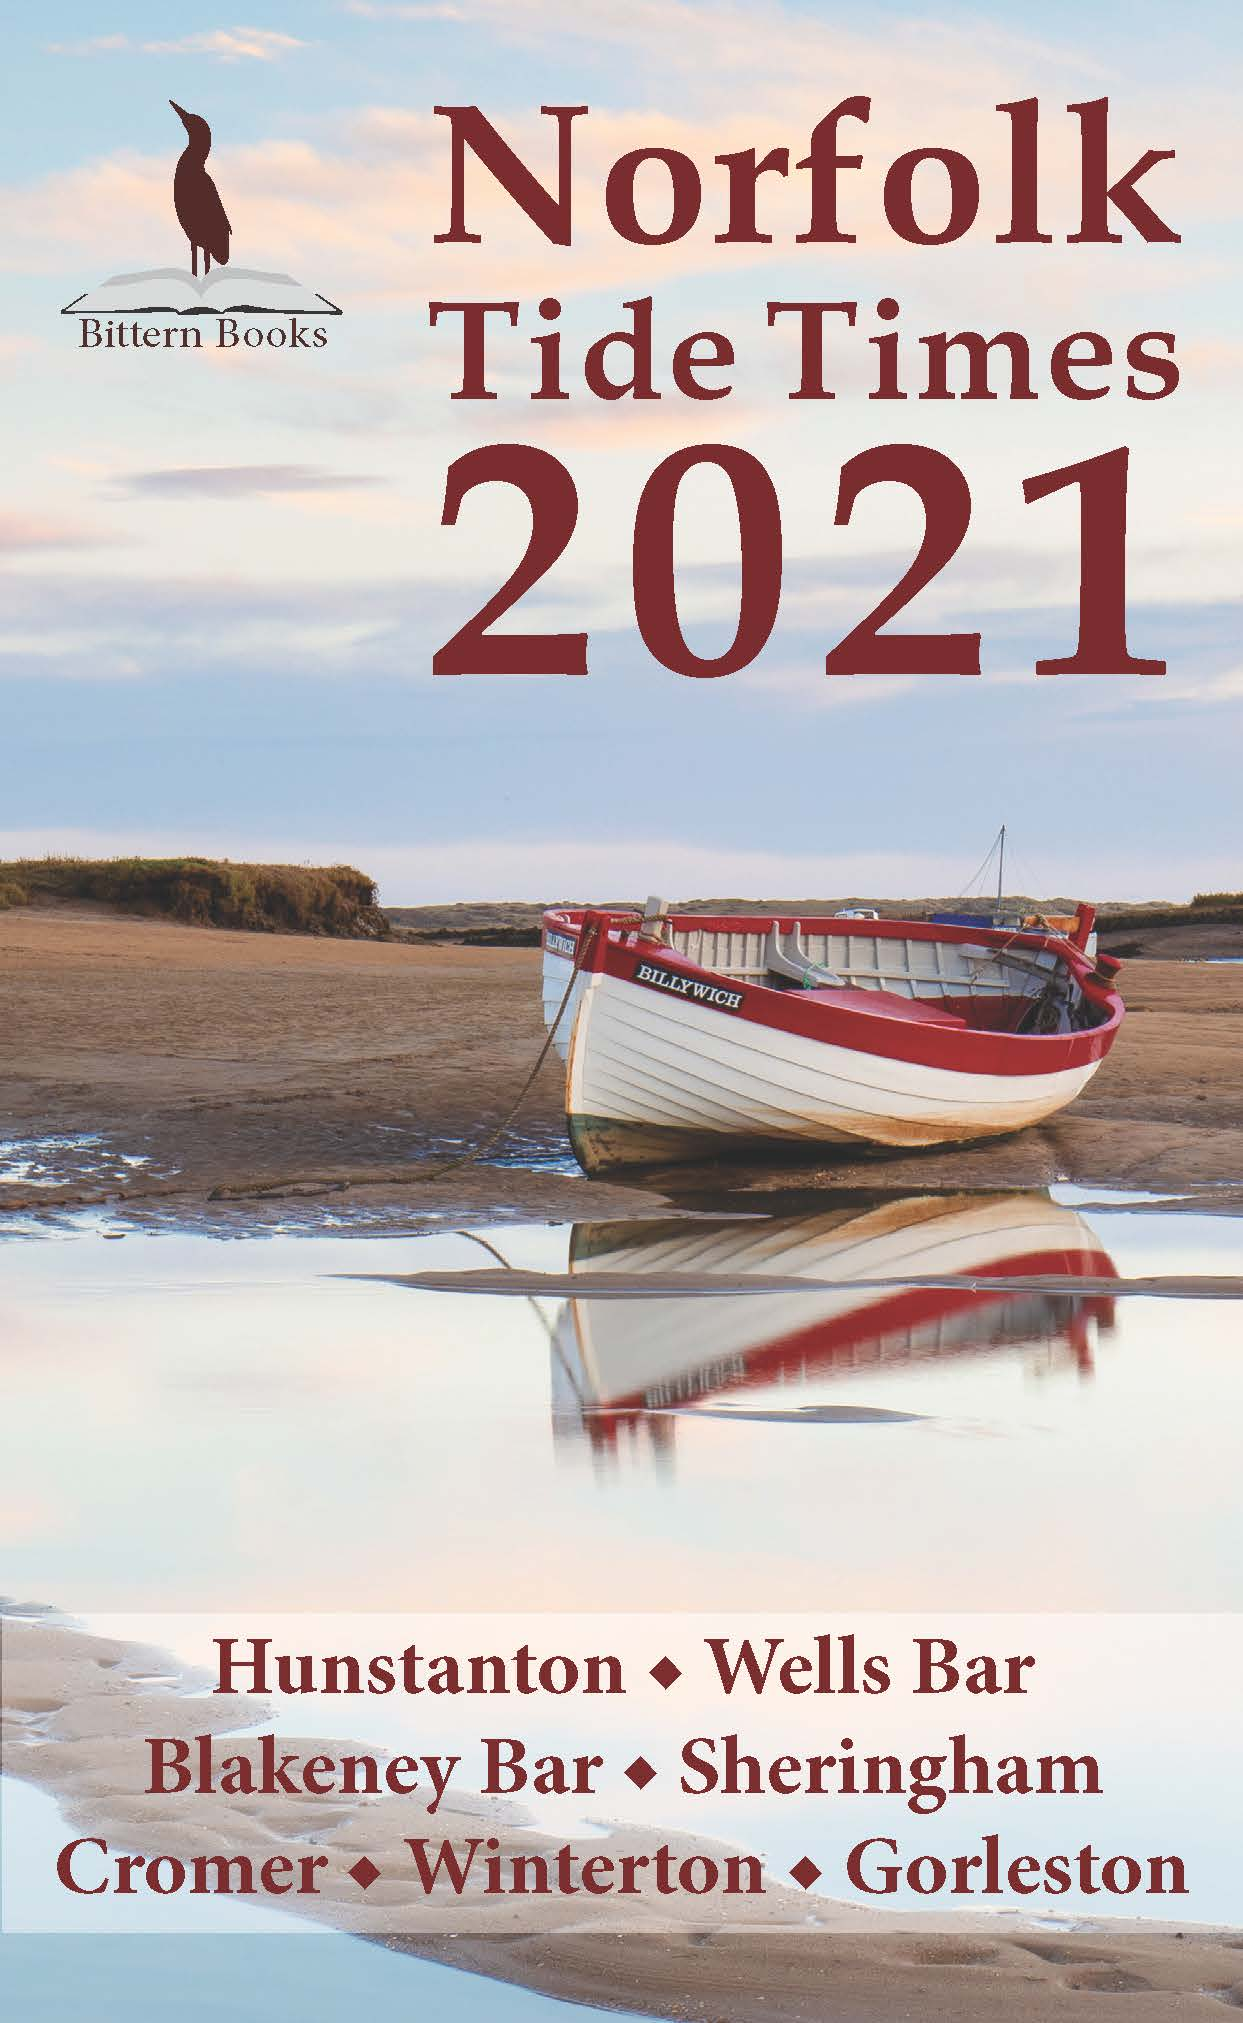 Norfolk Tide Times 2021